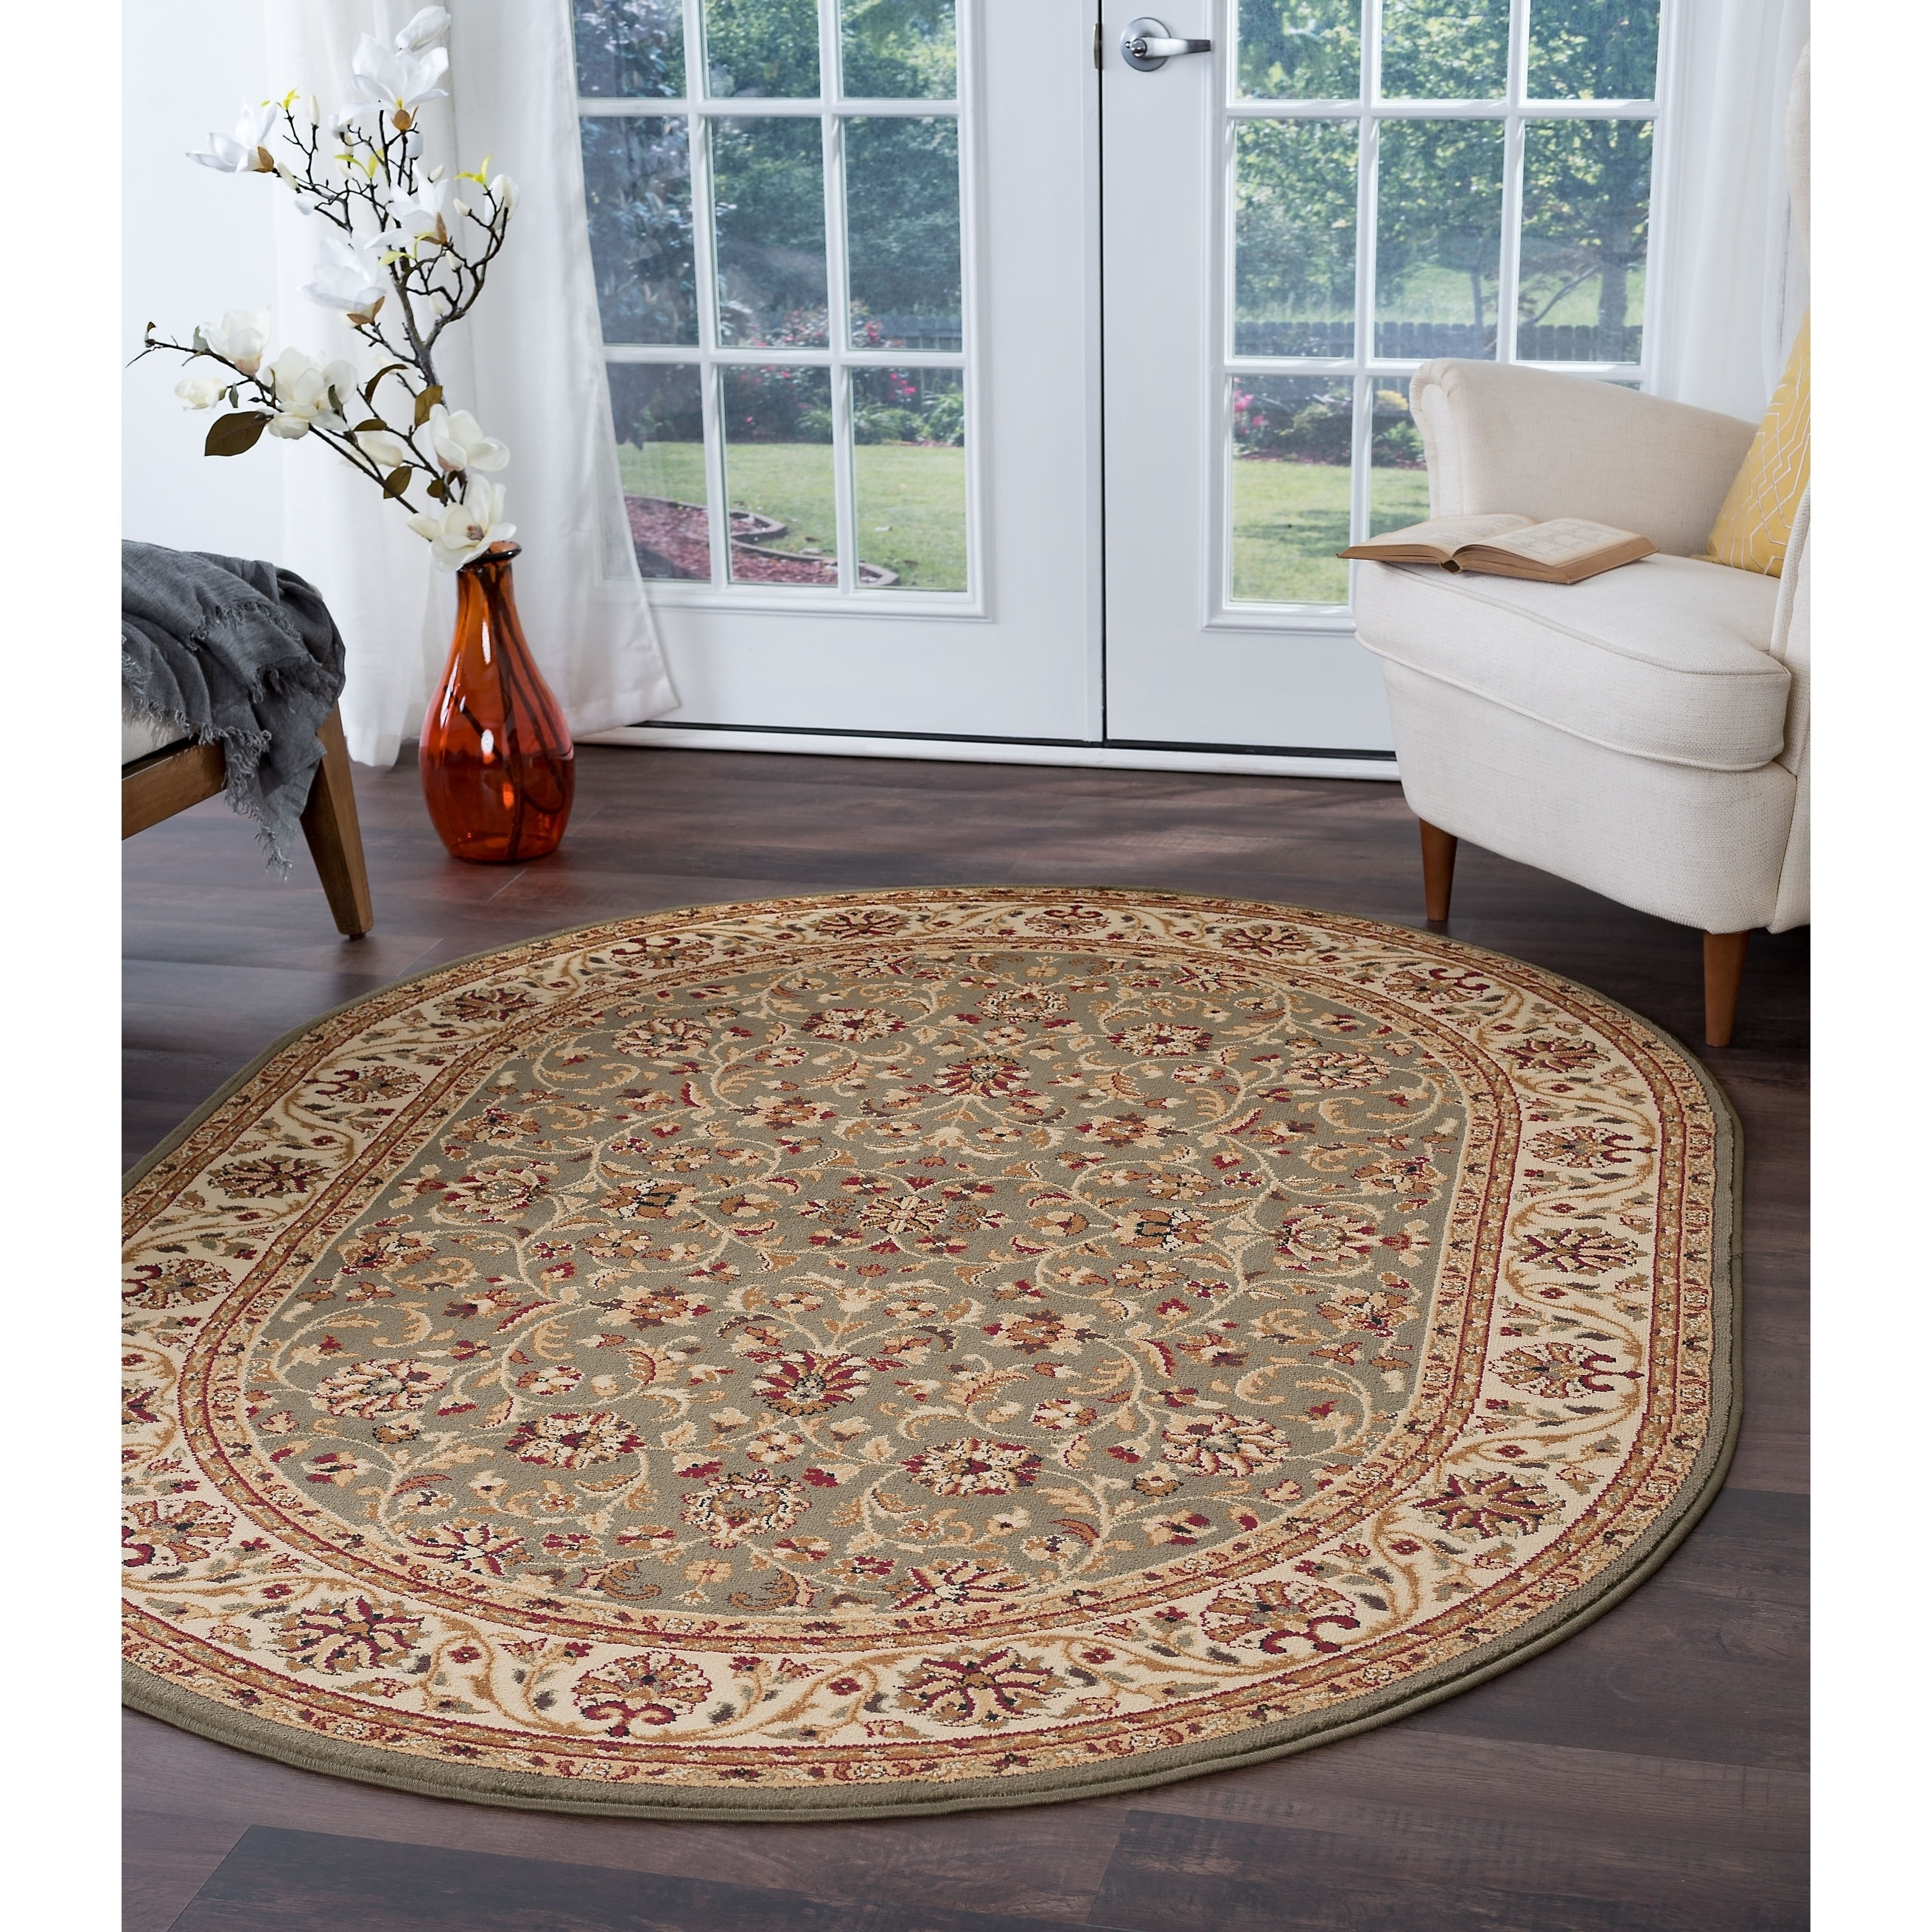 Alise Soho Oval Transitional Area Rug (5'3 x 7'3 Oval) (G...